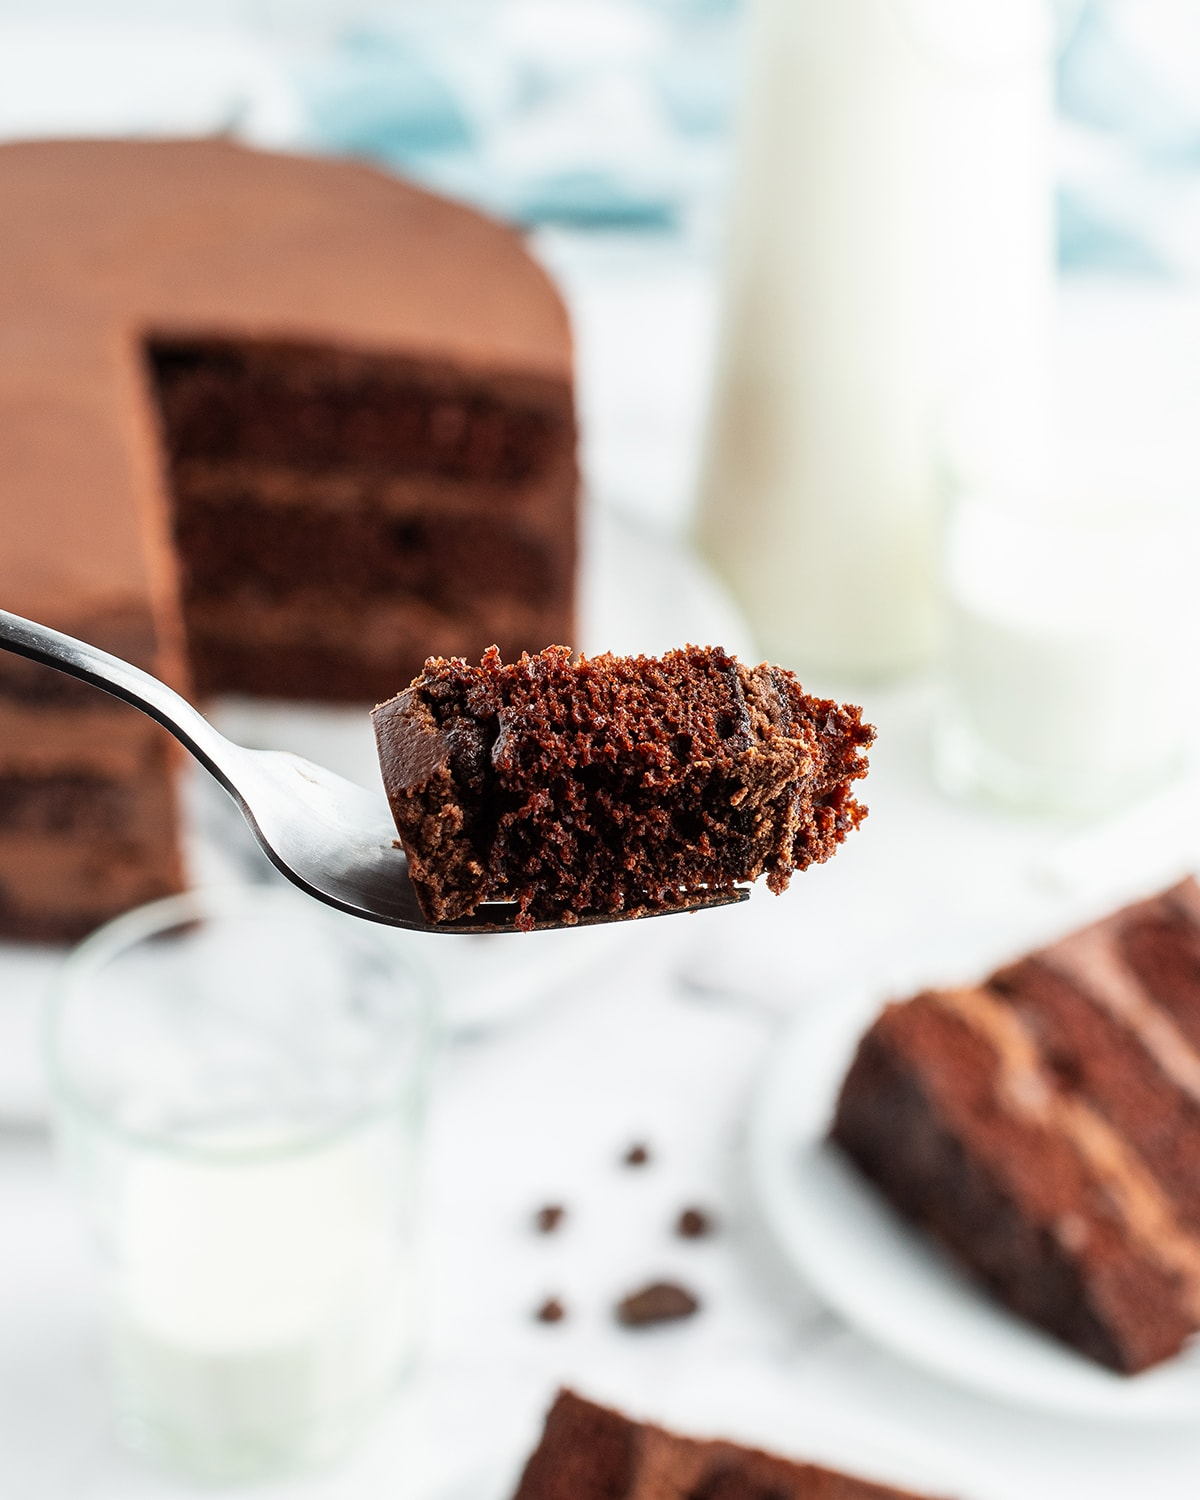 A bite of chocolate cake on a fork with the slice in the background.